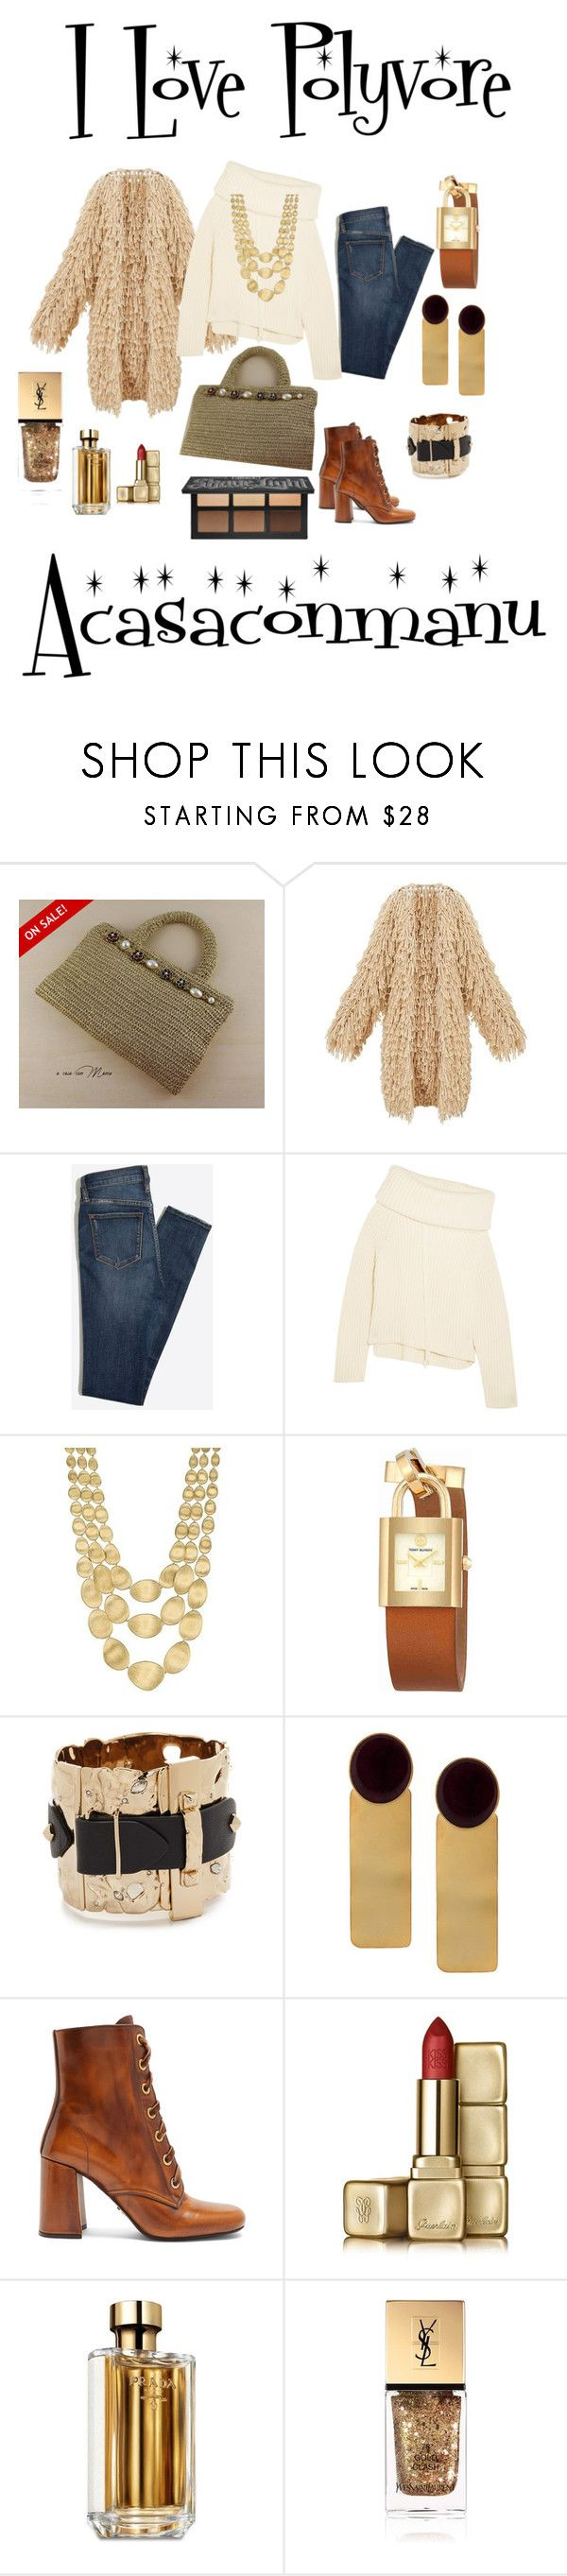 """Elegant gold coloured crochet handbag"" by bamasbabes ❤ liked on Polyvore featuring Joseph, Marco Bicego, Tory Burch, Alexis Bittar, Silhouette, Prada, Guerlain and Yves Saint Laurent"